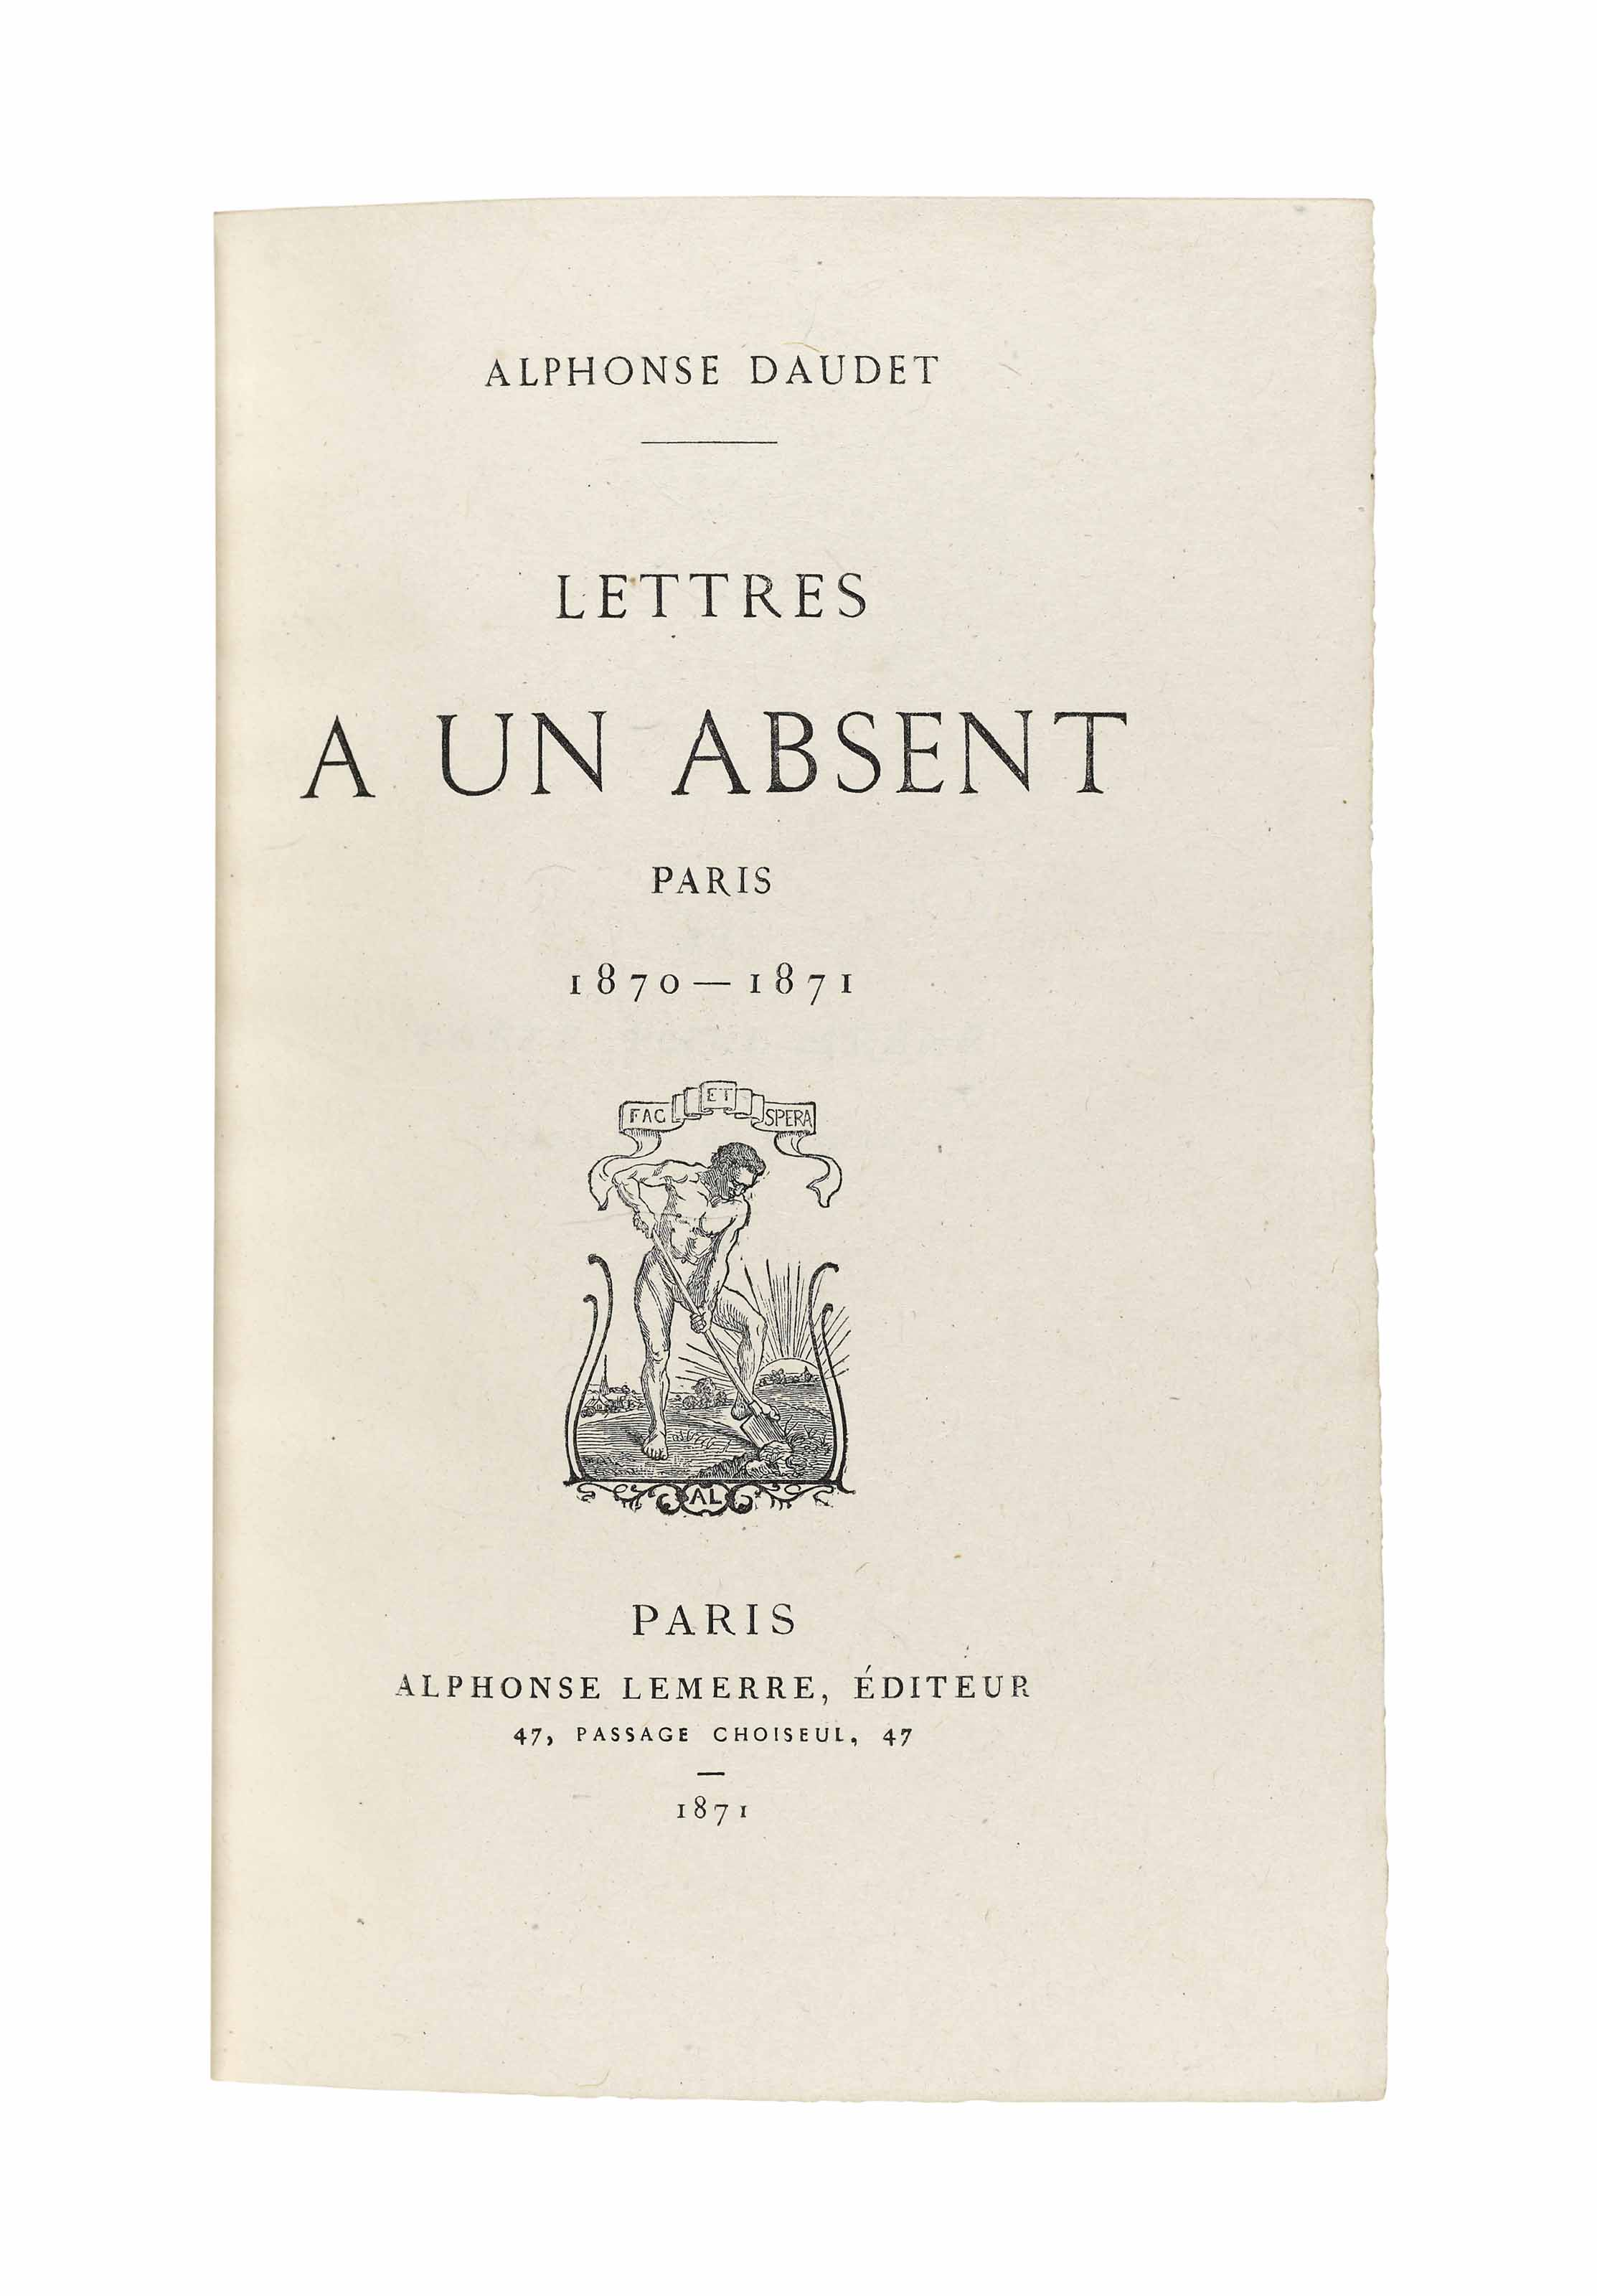 DAUDET, Alphonse (1840-1897). Lettres à un absent. Paris 1870-71. Paris: Lemerre, 1871. 8° (180 x 117mm). Half-title, title with vignette, foliated opening initial to each chapter, head- and tail-pieces in similar style. (Small red and blue ink stains in a few bottom margins.) Dark brown morocco by Marius-Michel, later gilt supralibros, green morocco doublures, free endpapers of patterned silk, original plain glassine wrappers bound in. Provenance: purchased from Carteret, 1925.